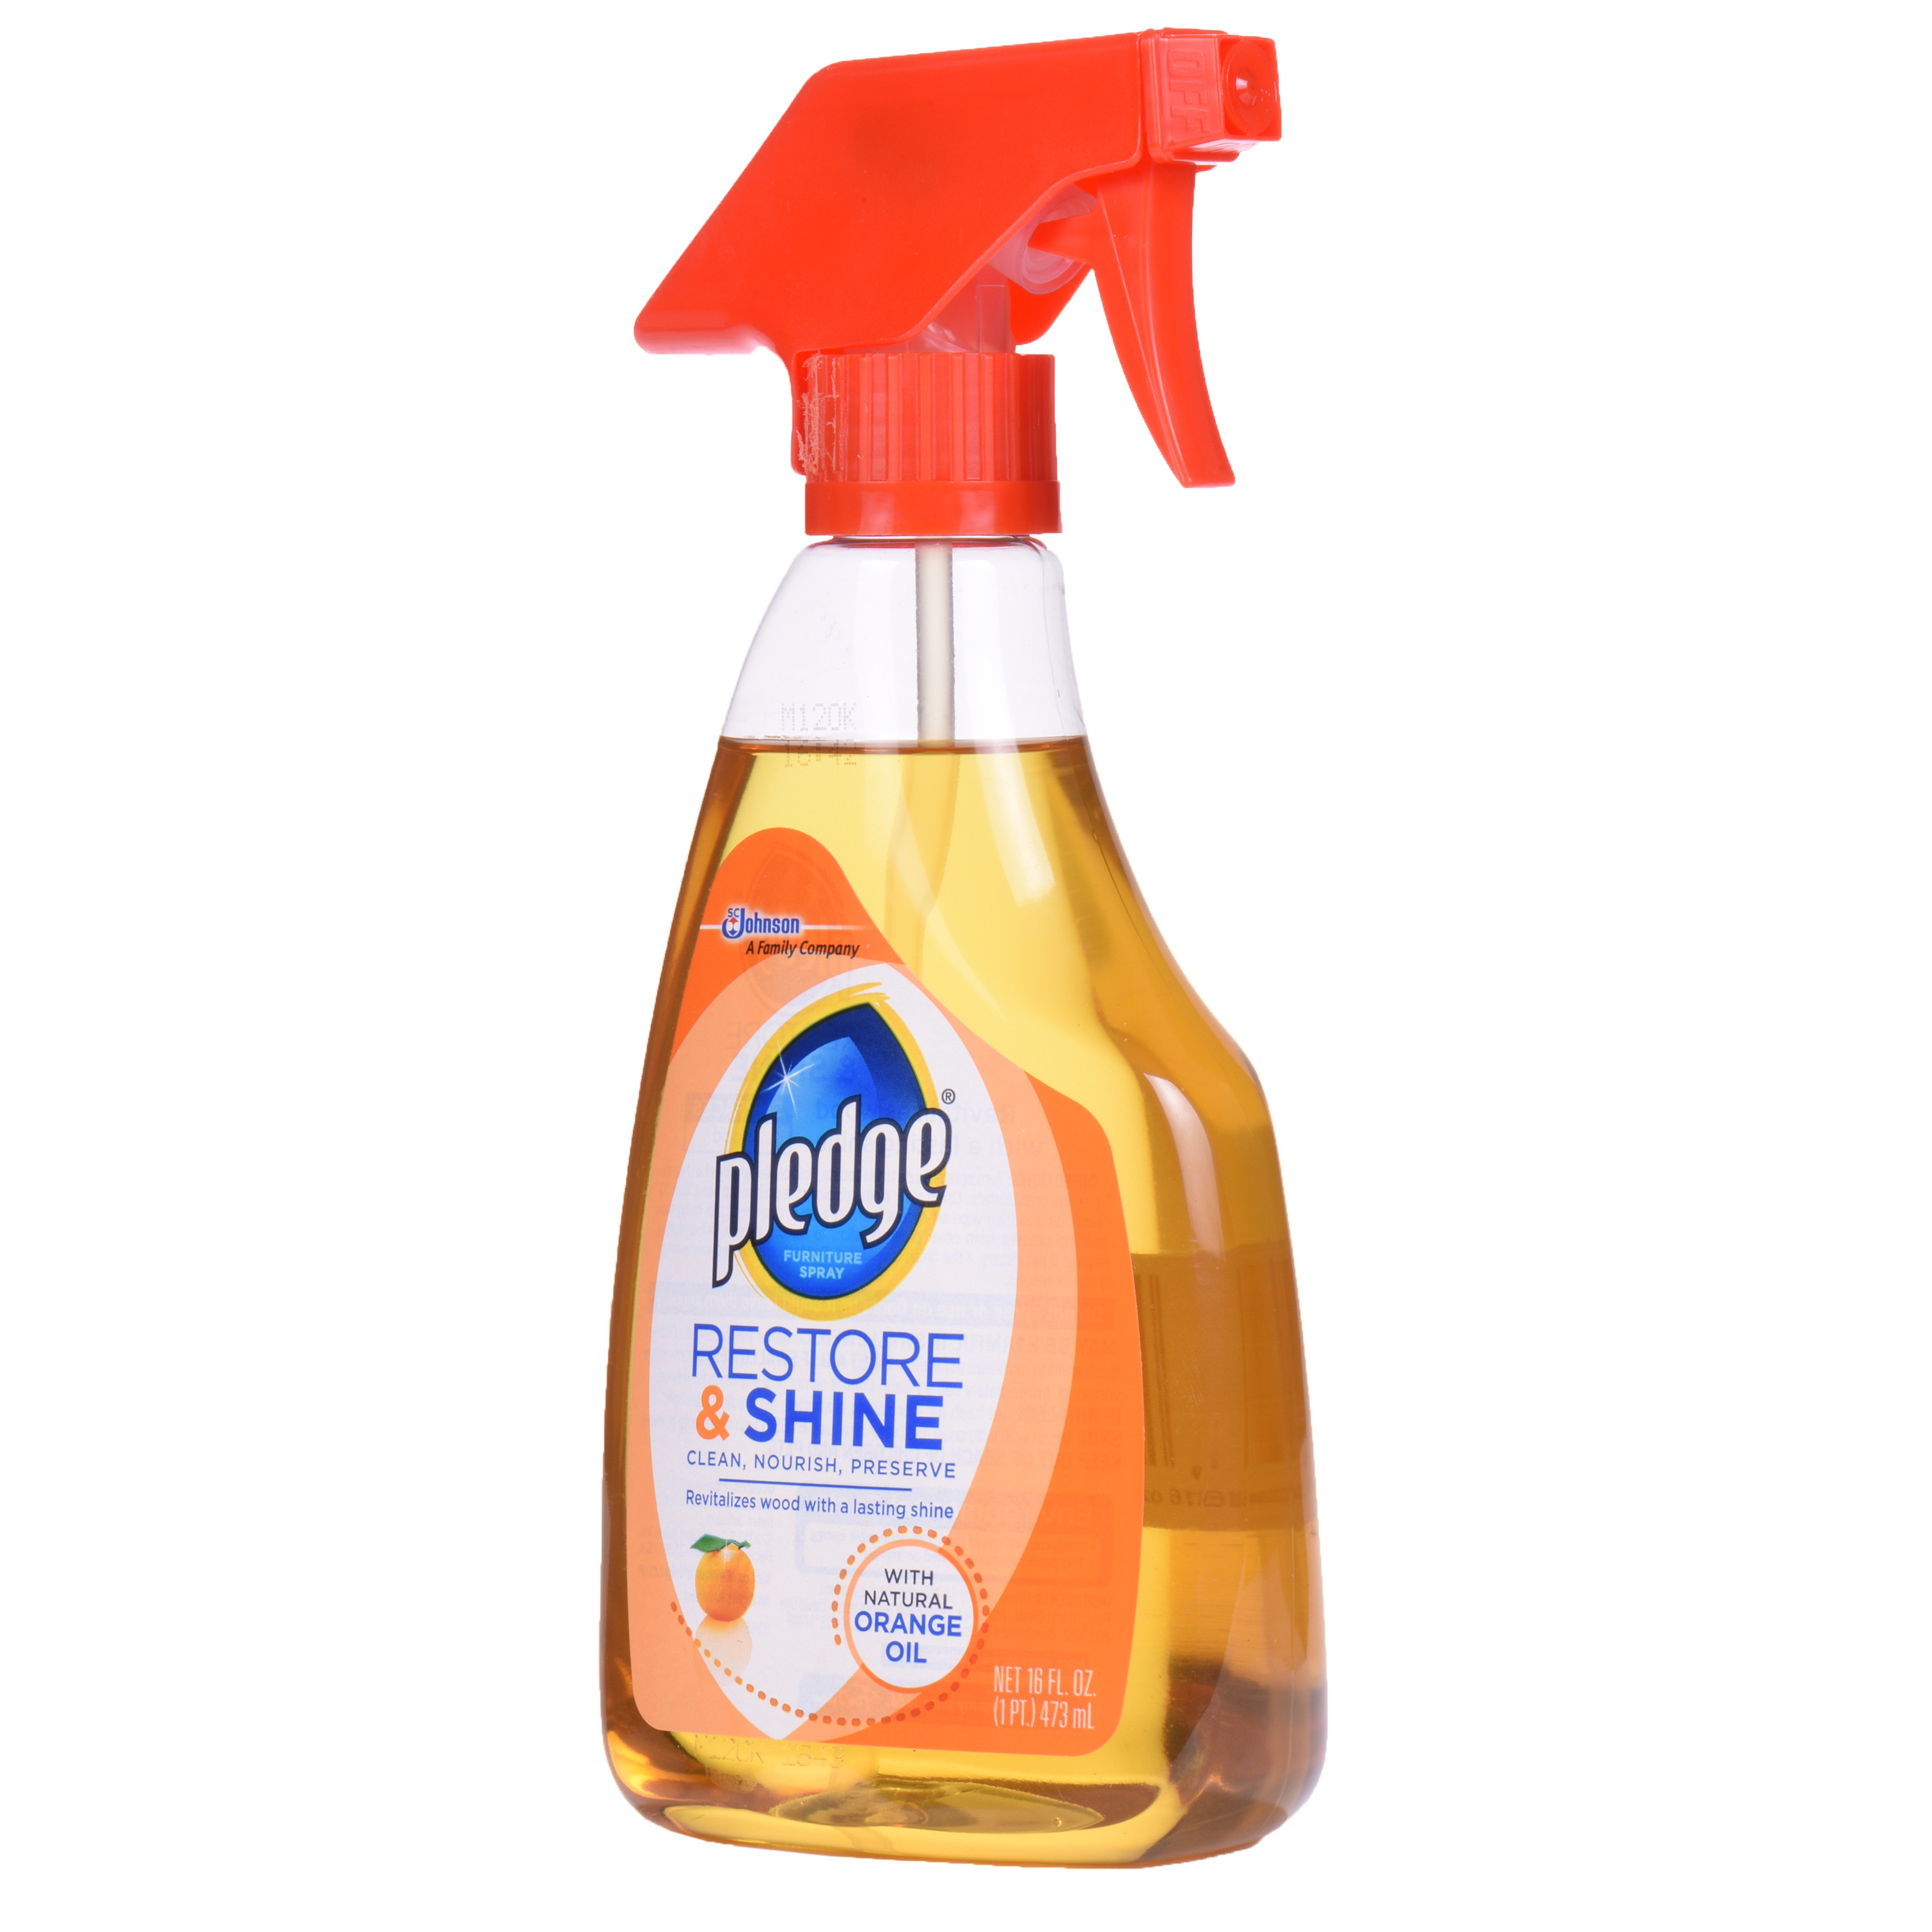 Pledge Restore & Shine with Natural Orange Oil 16.0 fl oz(pack of 2)